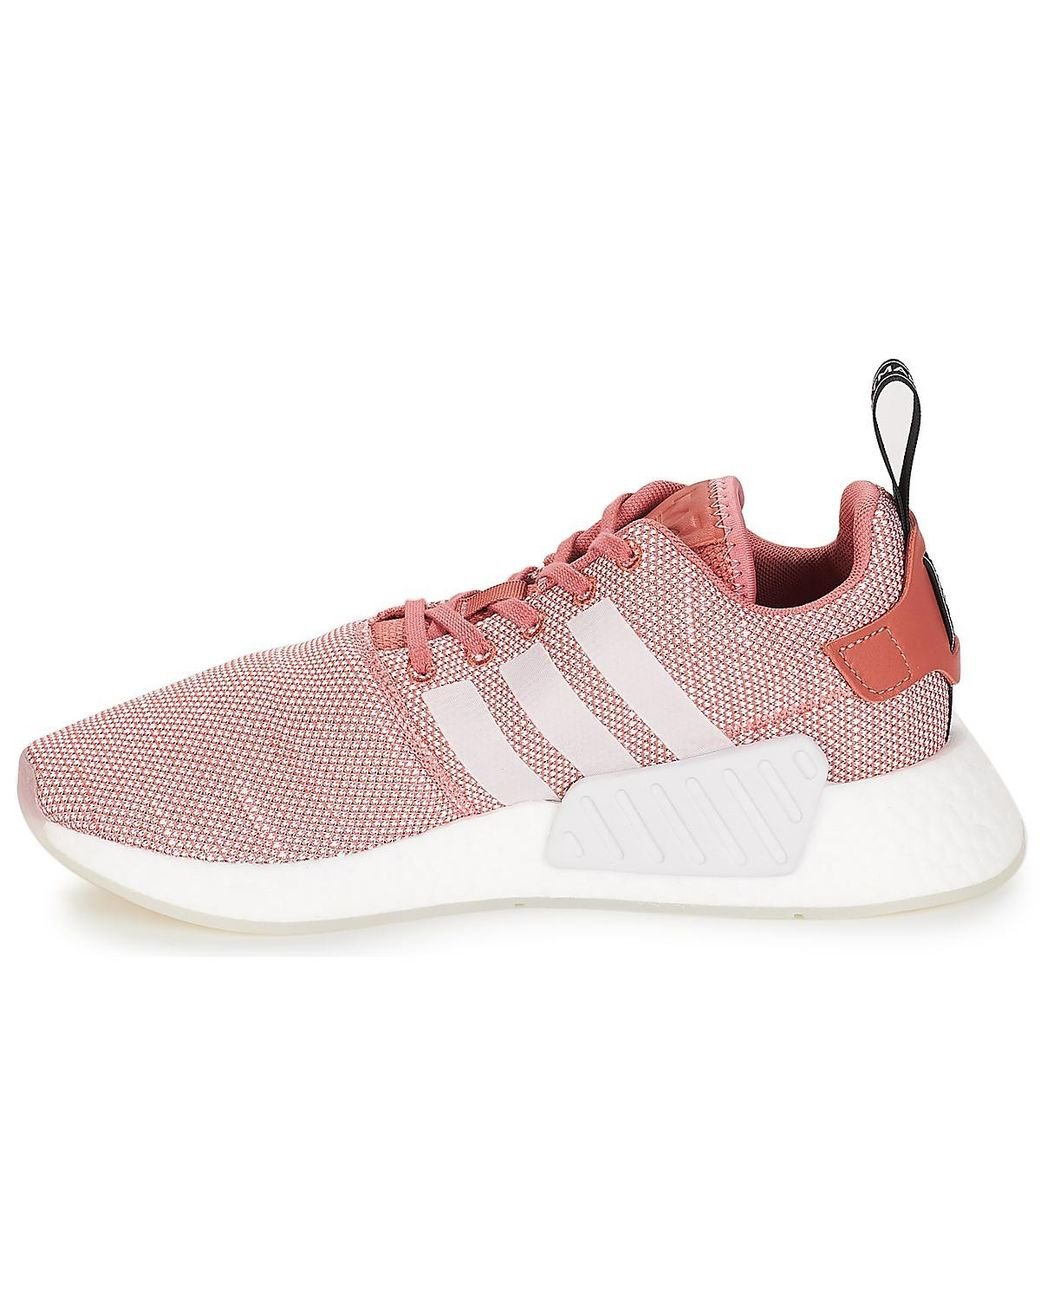 4eed677b5 adidas Nmd R2 W Women s Shoes (trainers) In Pink in Pink - Lyst